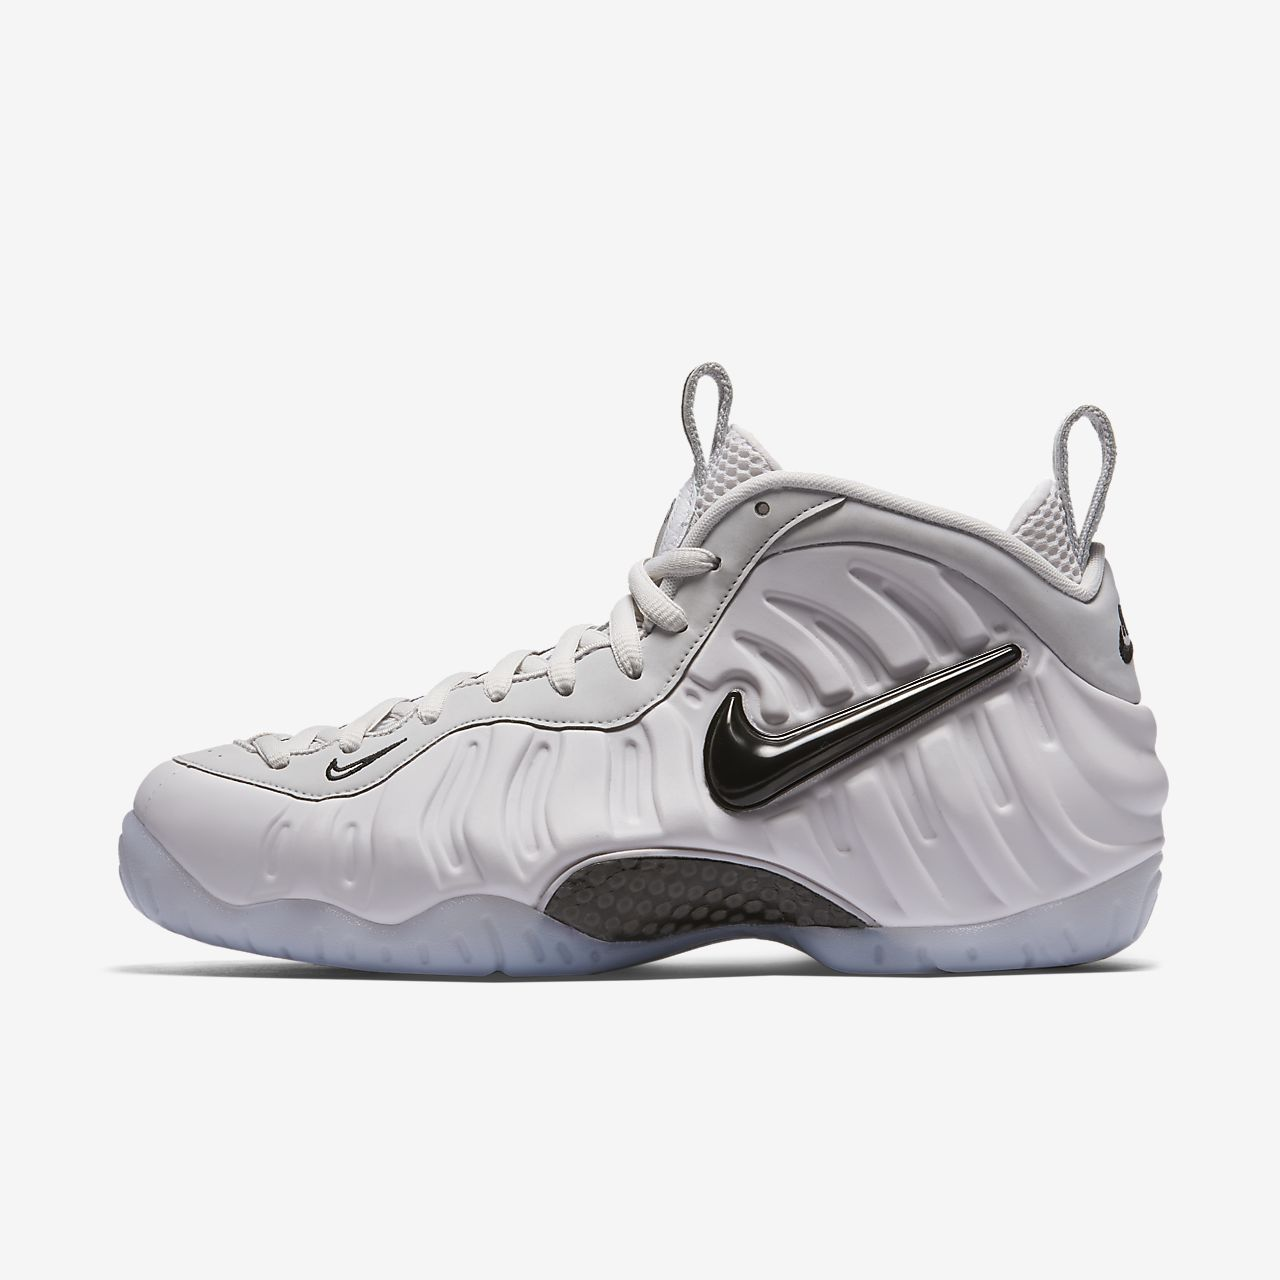 4b51de0096ac8 Nike Air Foamposite Pro QS Mens Shoe ...